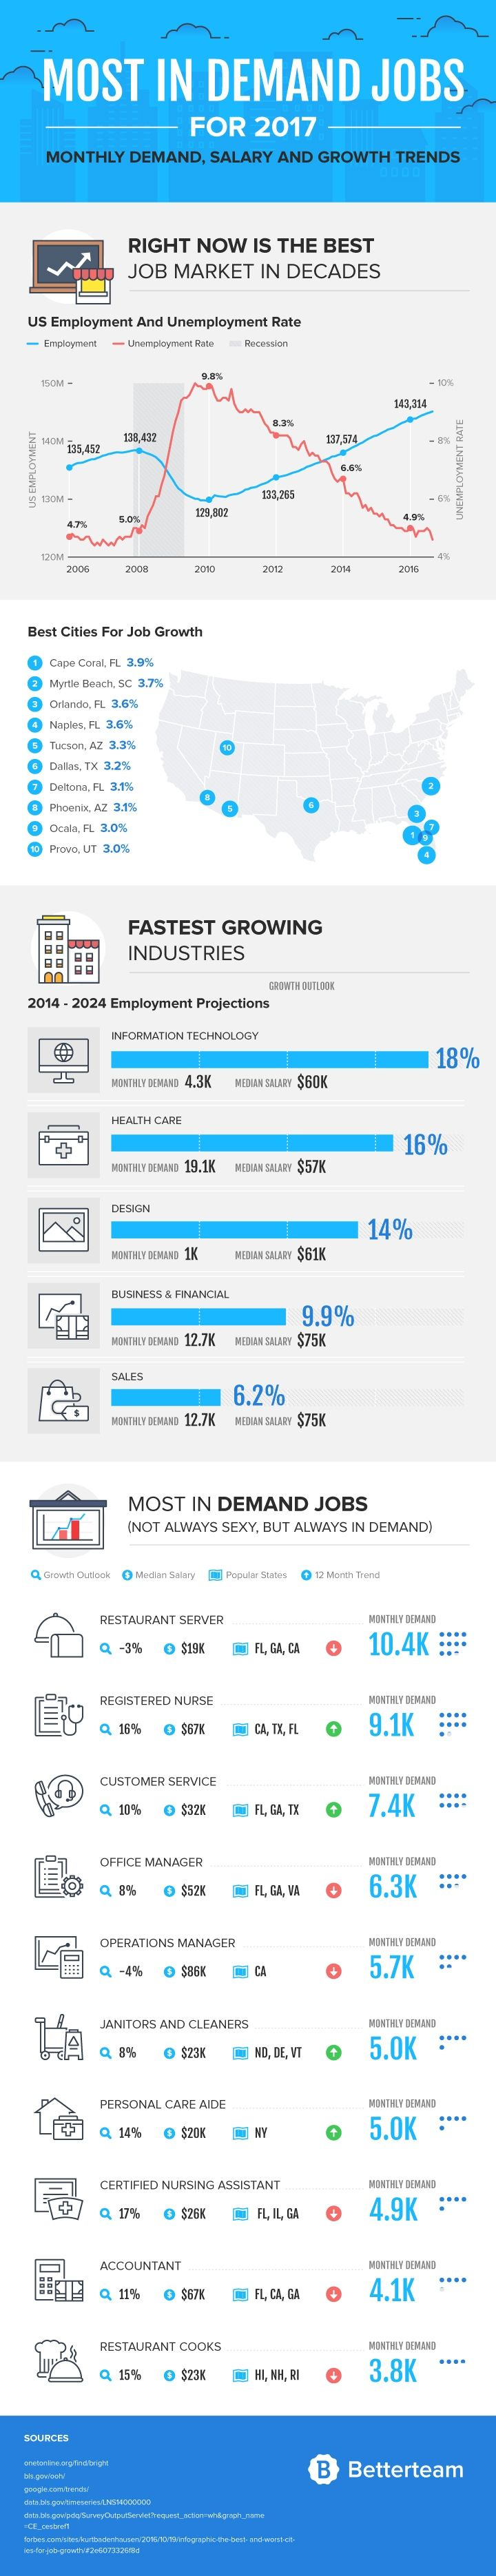 358 best Job Search images on Pinterest | Job search, Career and ...